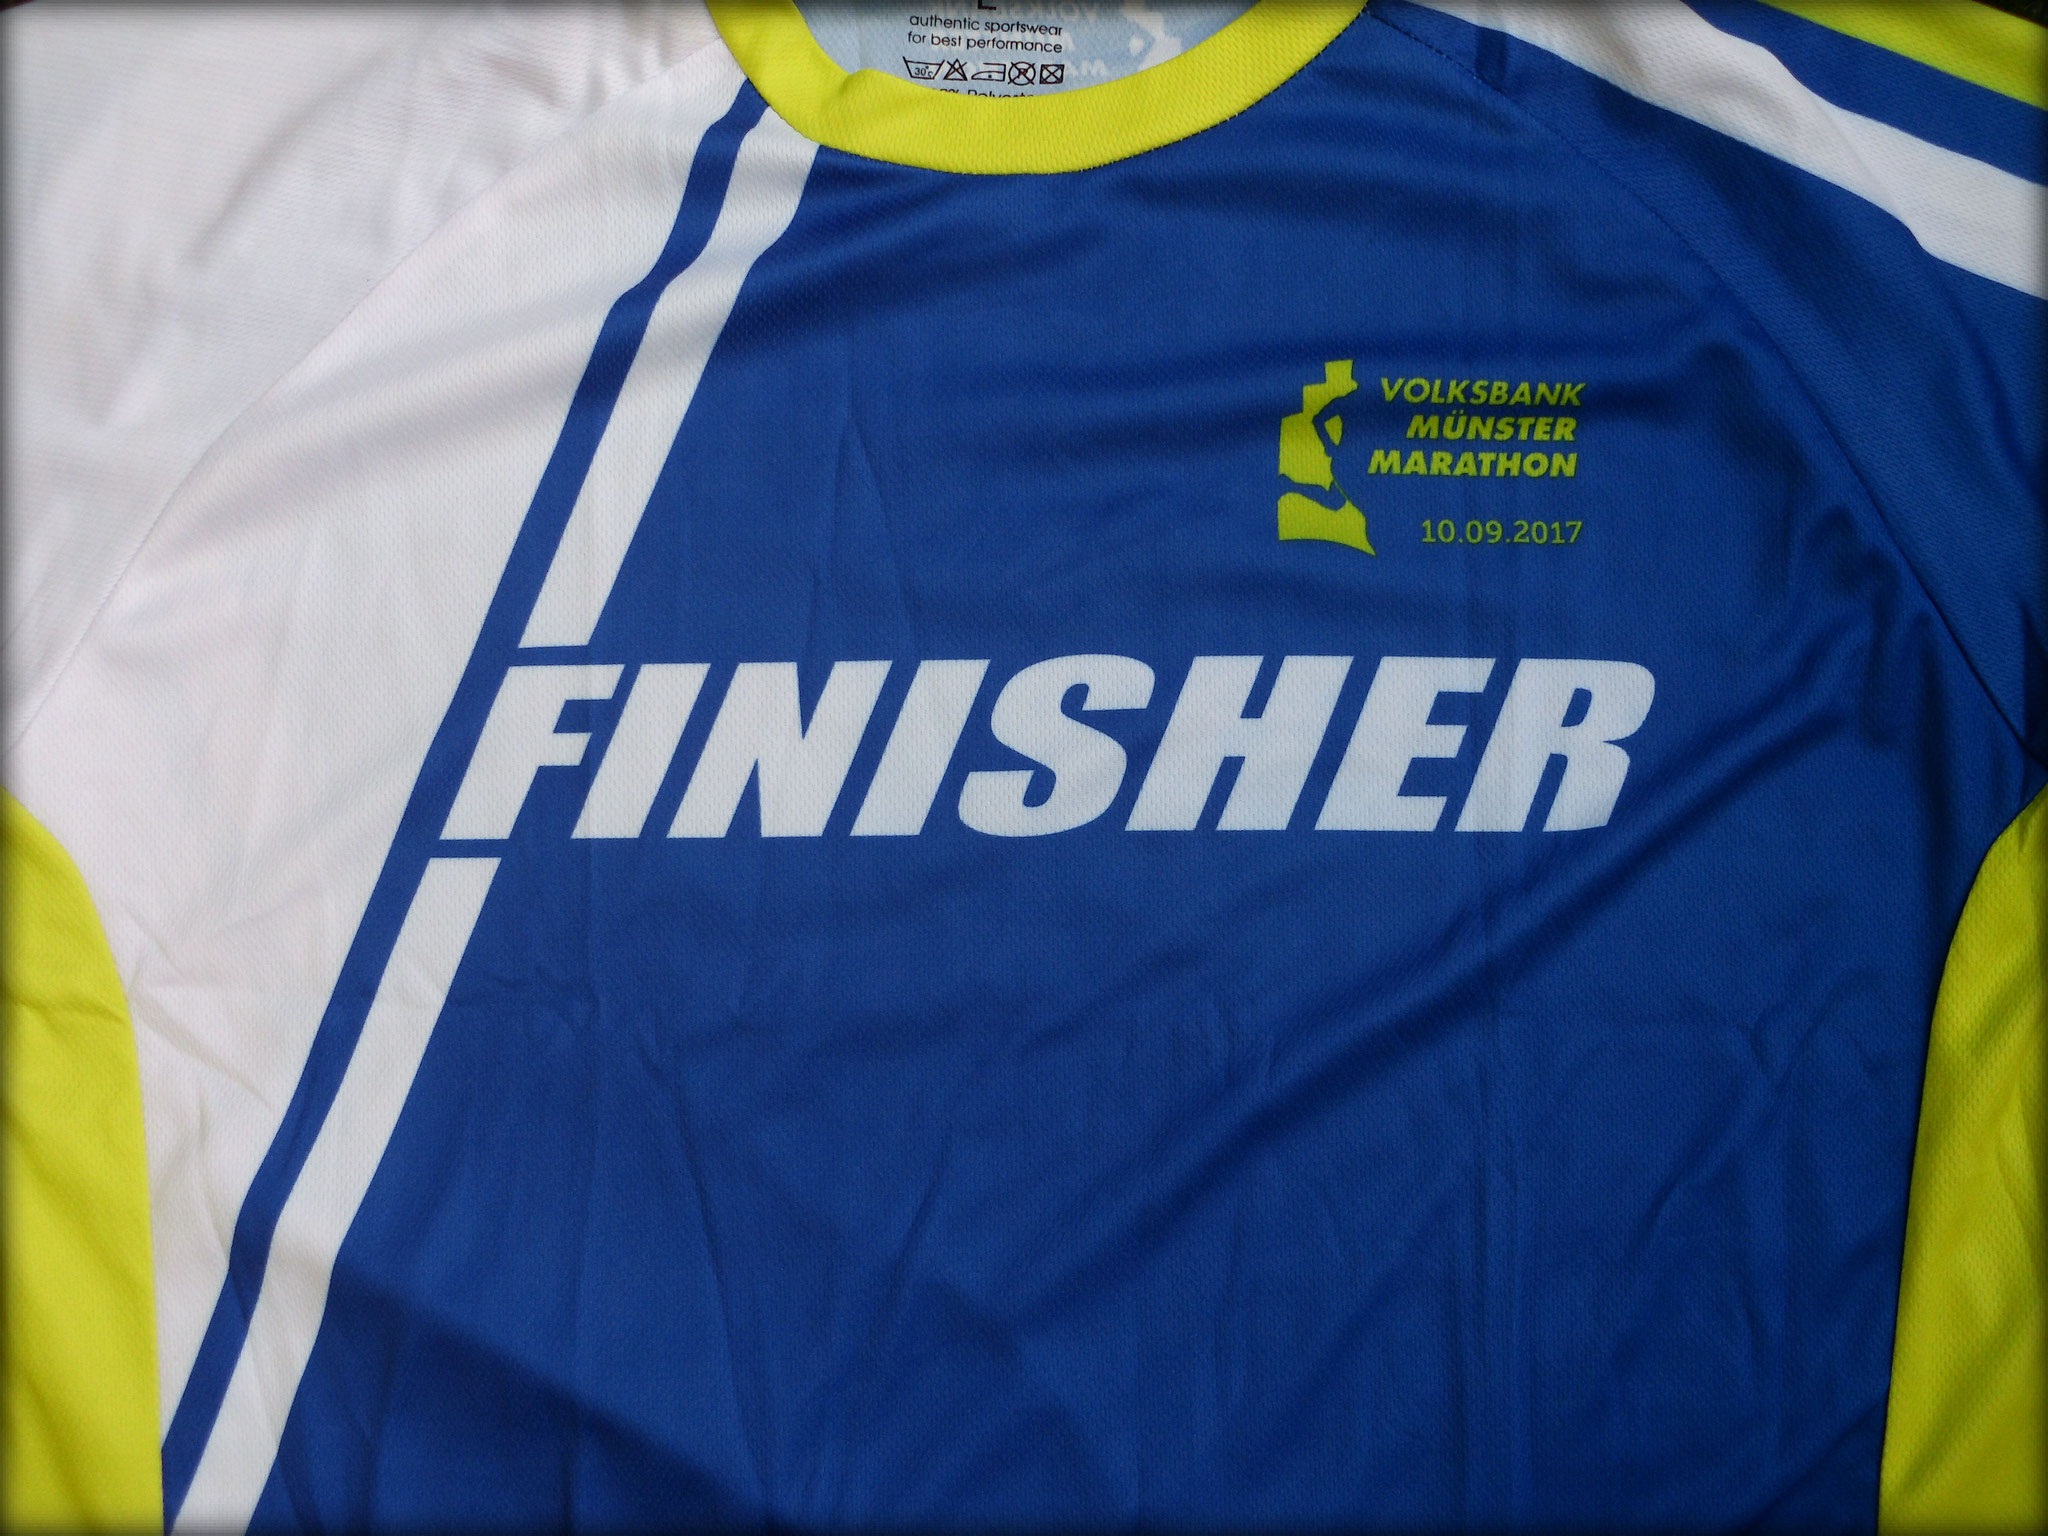 Münster Marathon 2017 - Finisher-Shirt